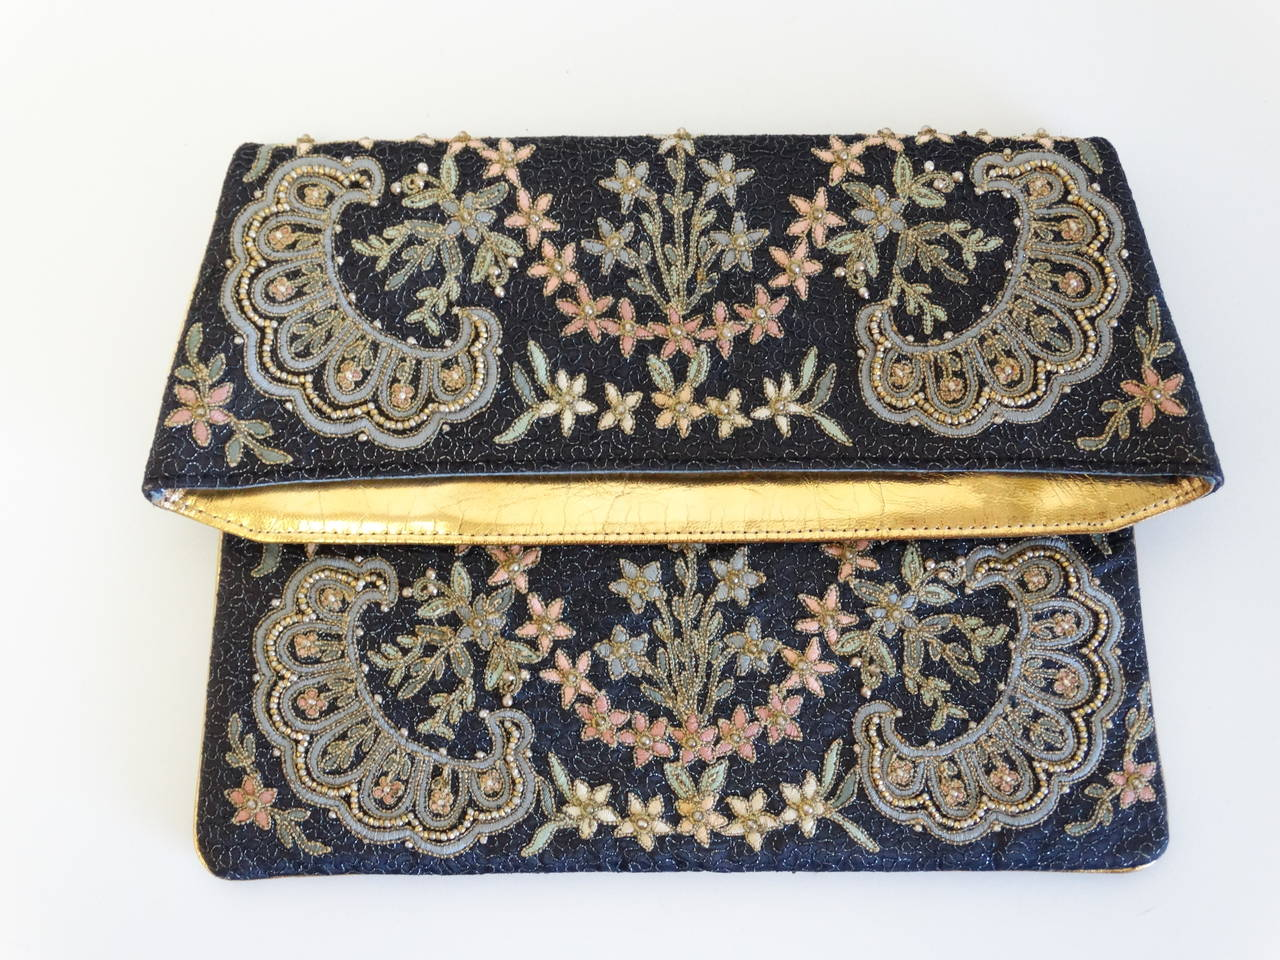 1950s Marheta Embroidered Fold Over Hand Clutch 4